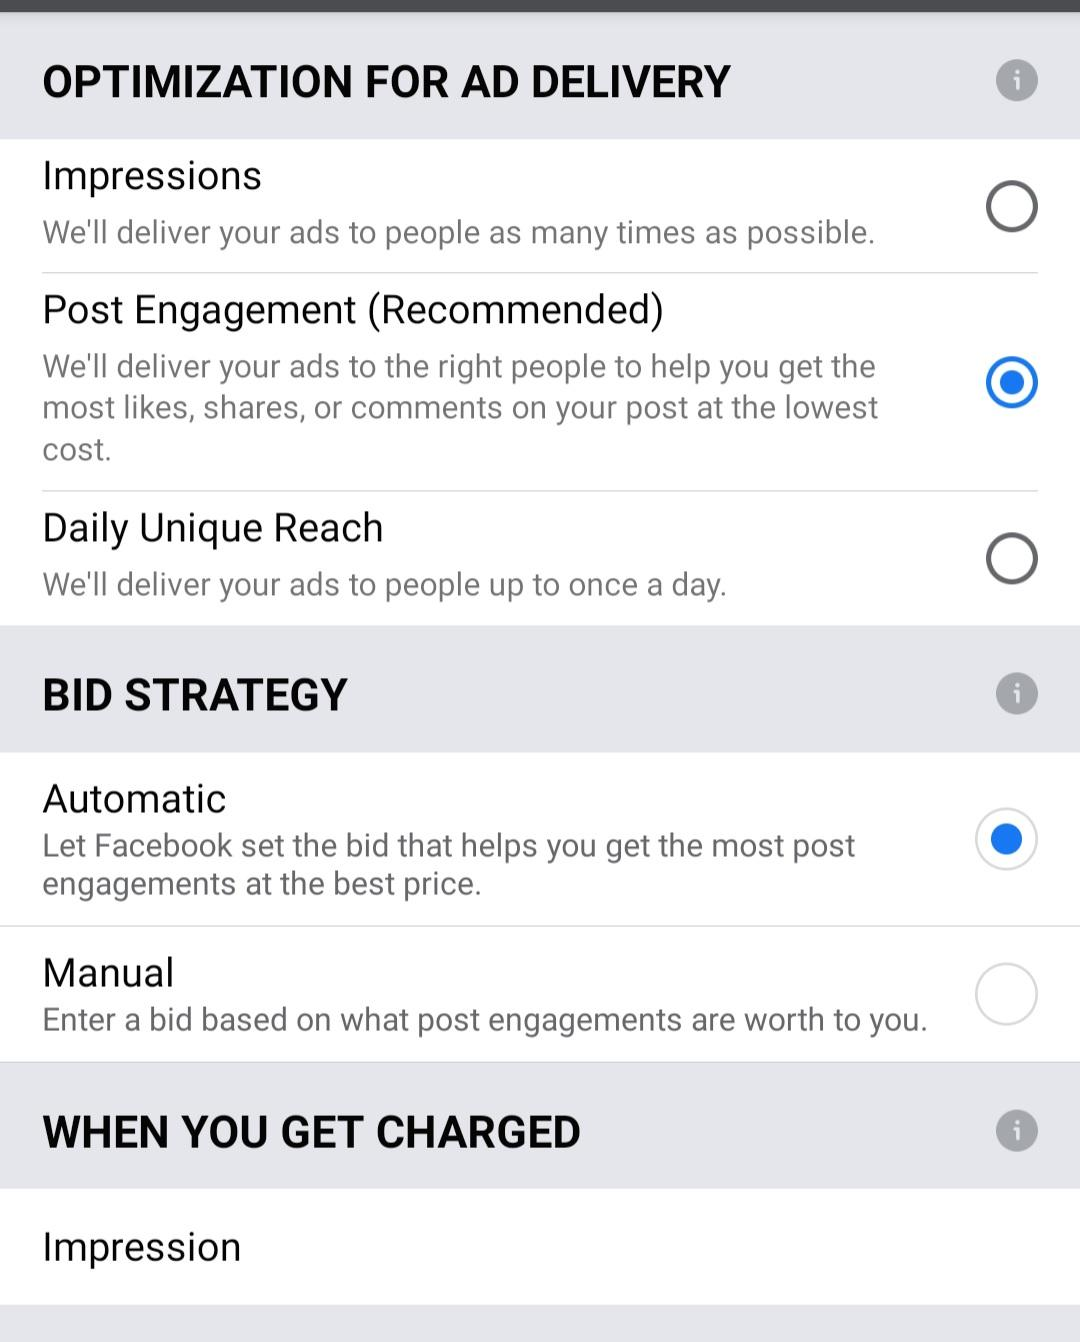 success stories of dropshippers who used Facebooks ads